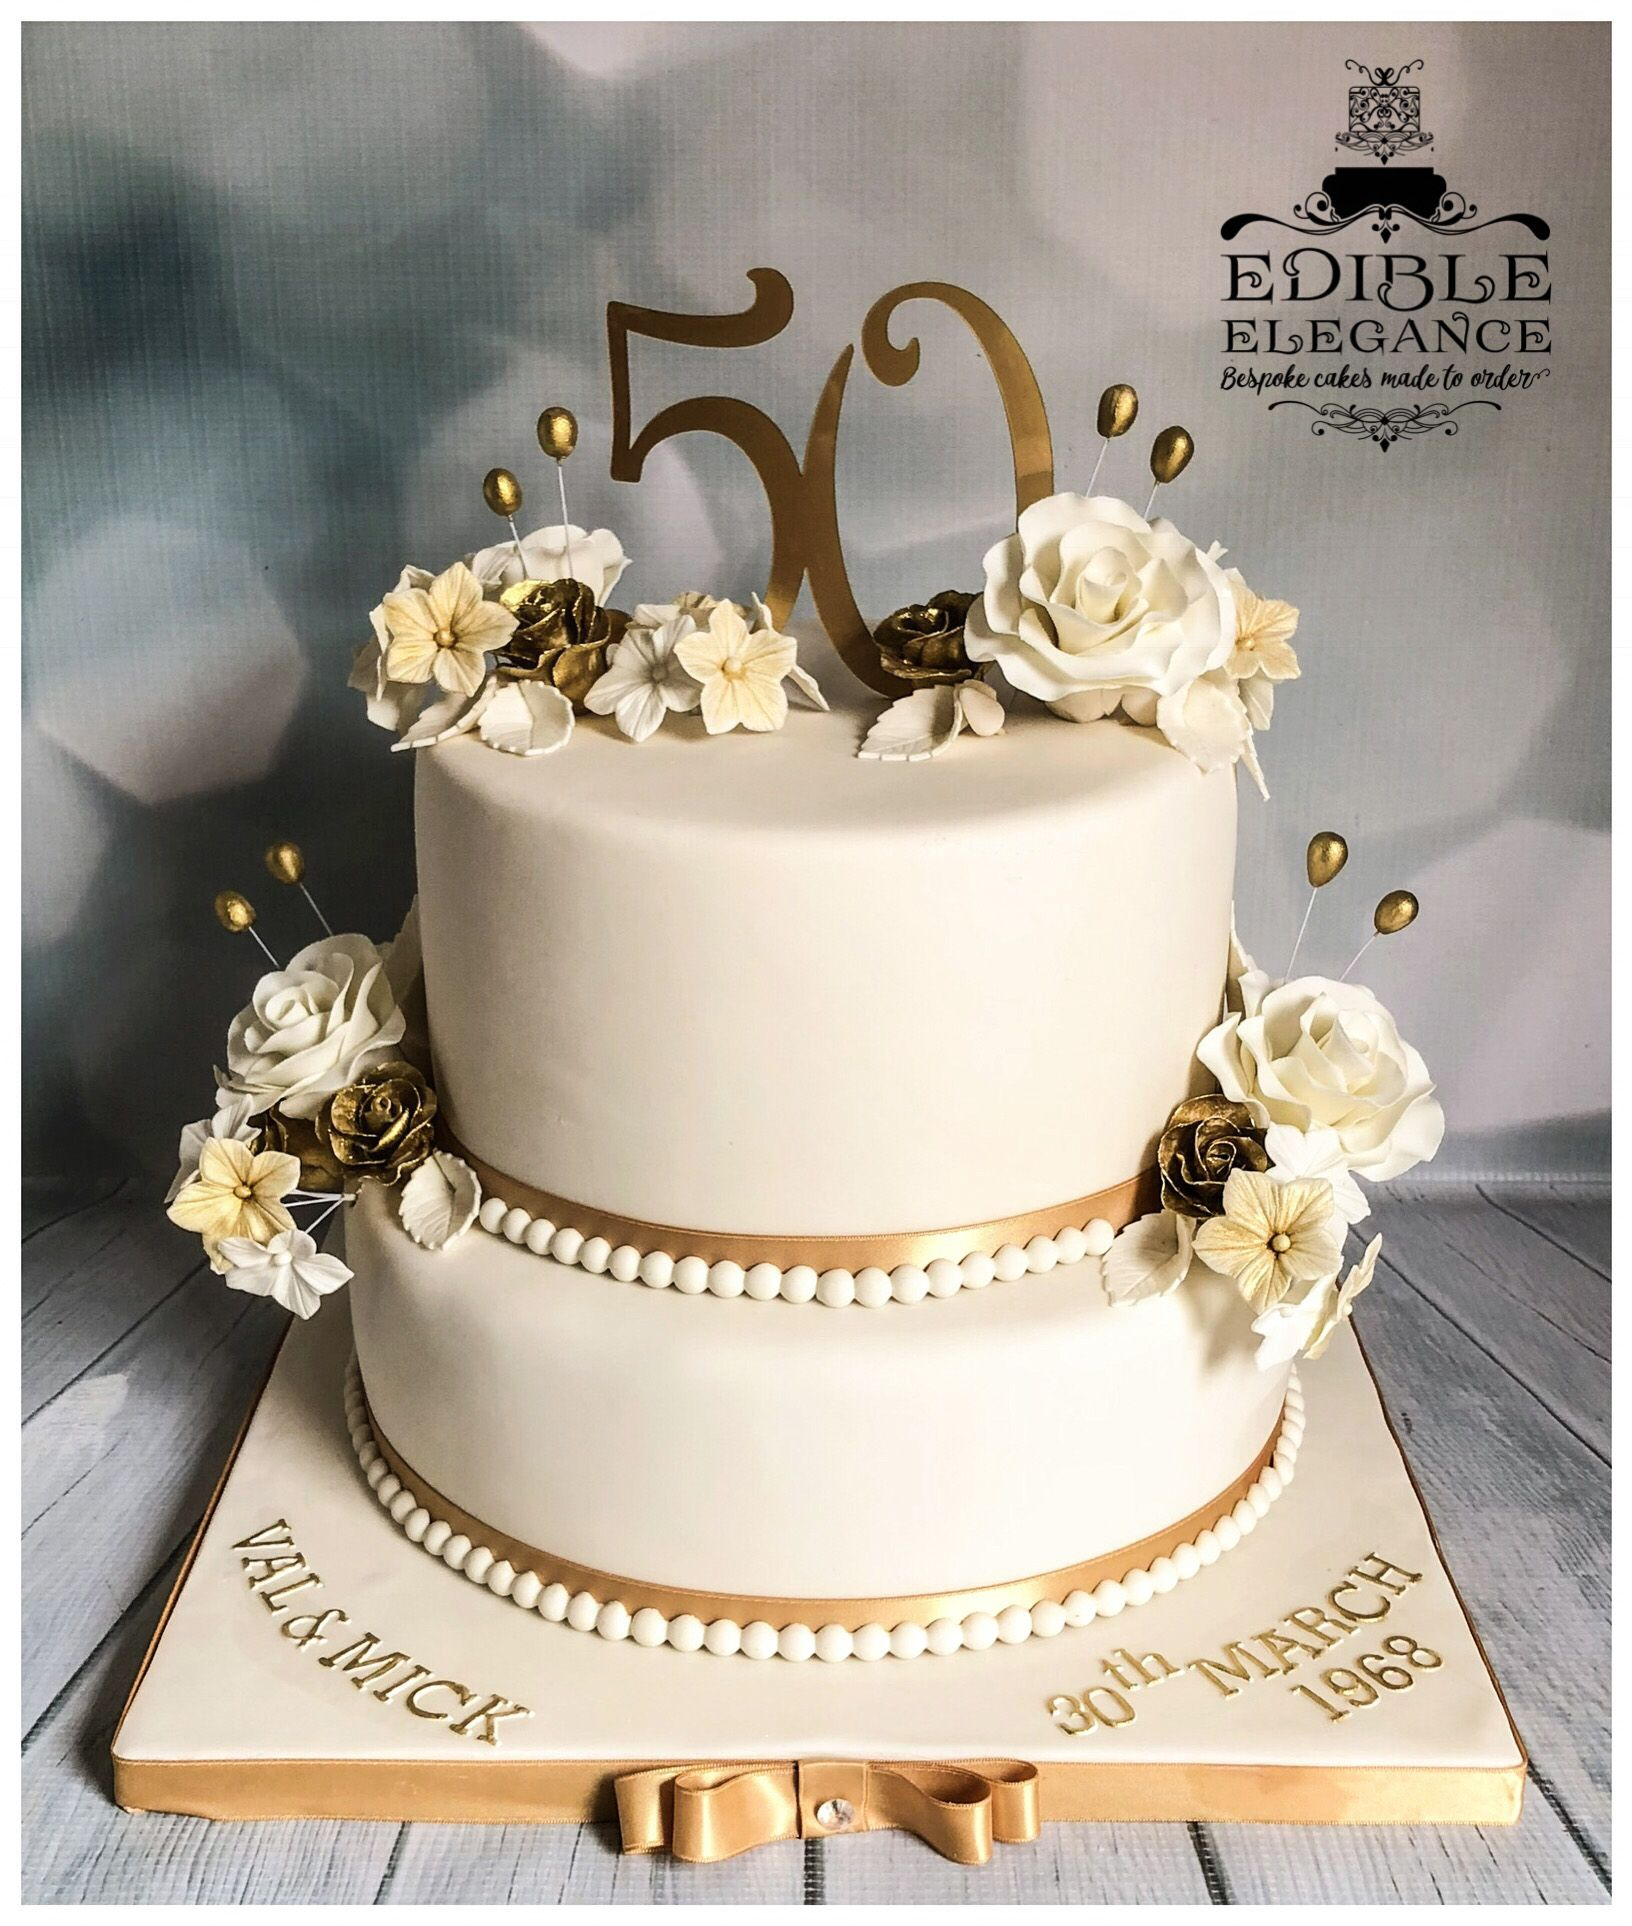 50th Golden Wedding Anniversary Cake 50th Wedding Anniversary Cakes 50th Anniversary Cakes Wedding Anniversary Cakes